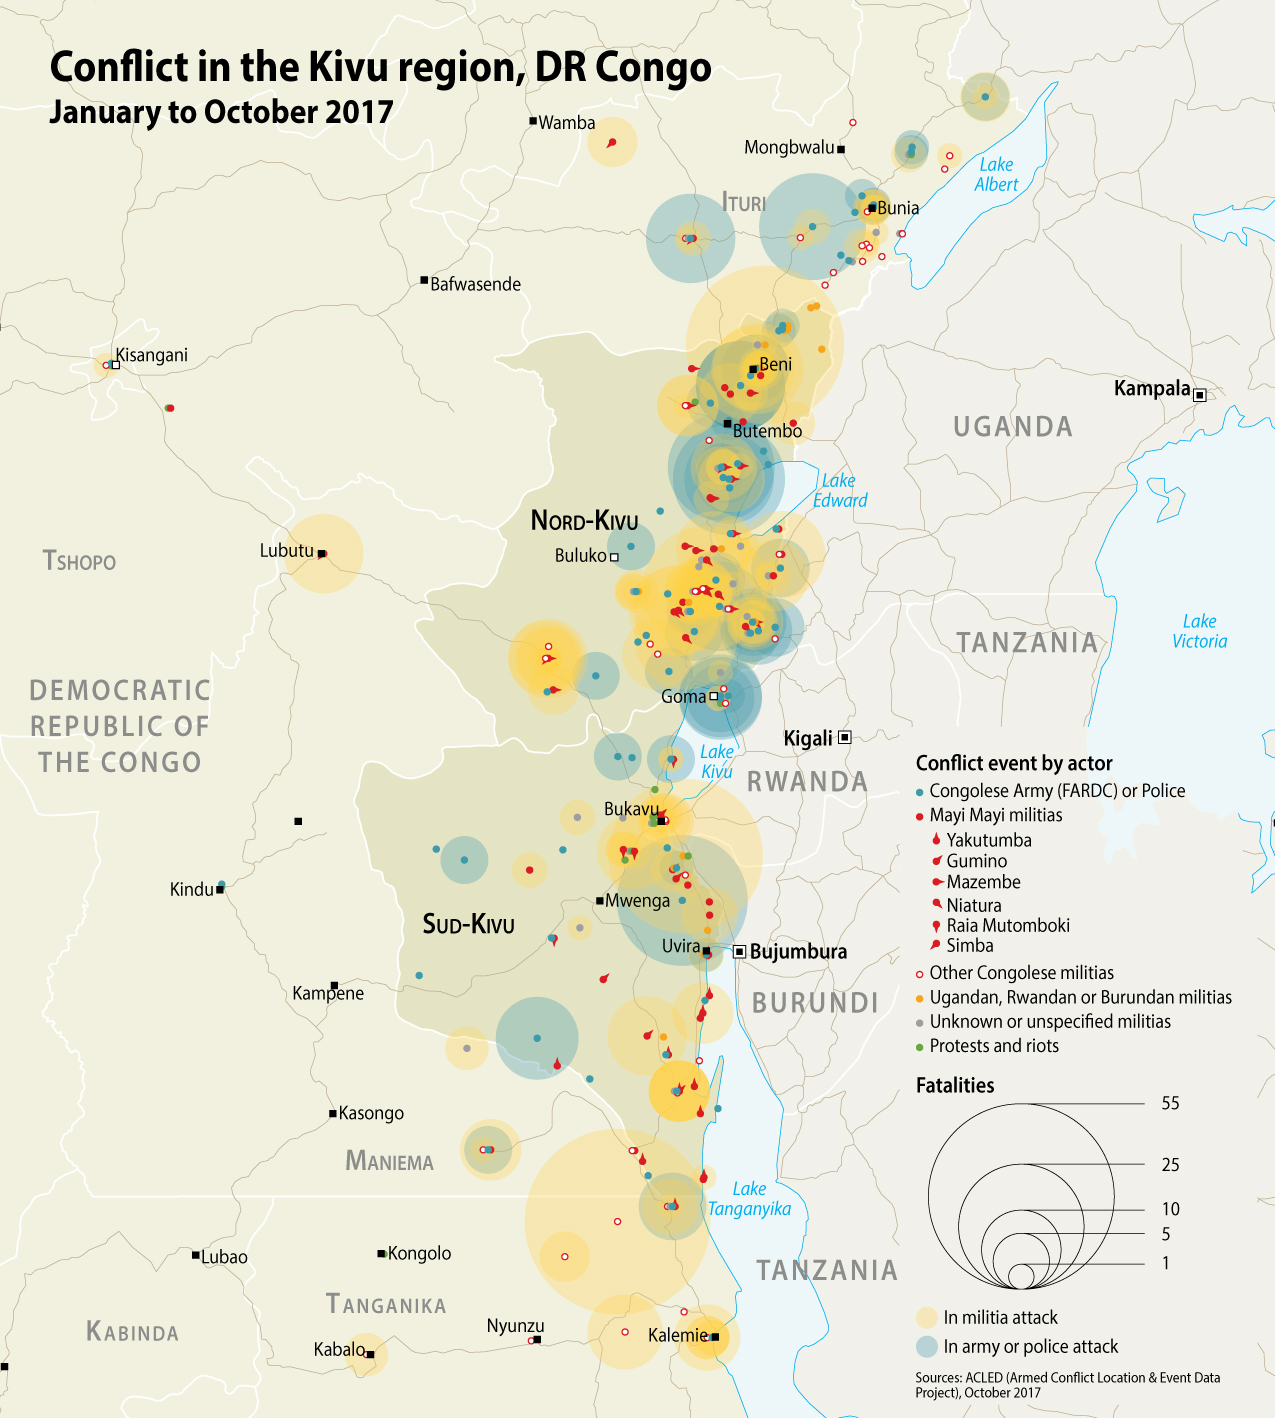 Conflict in the Kivu region, 2017